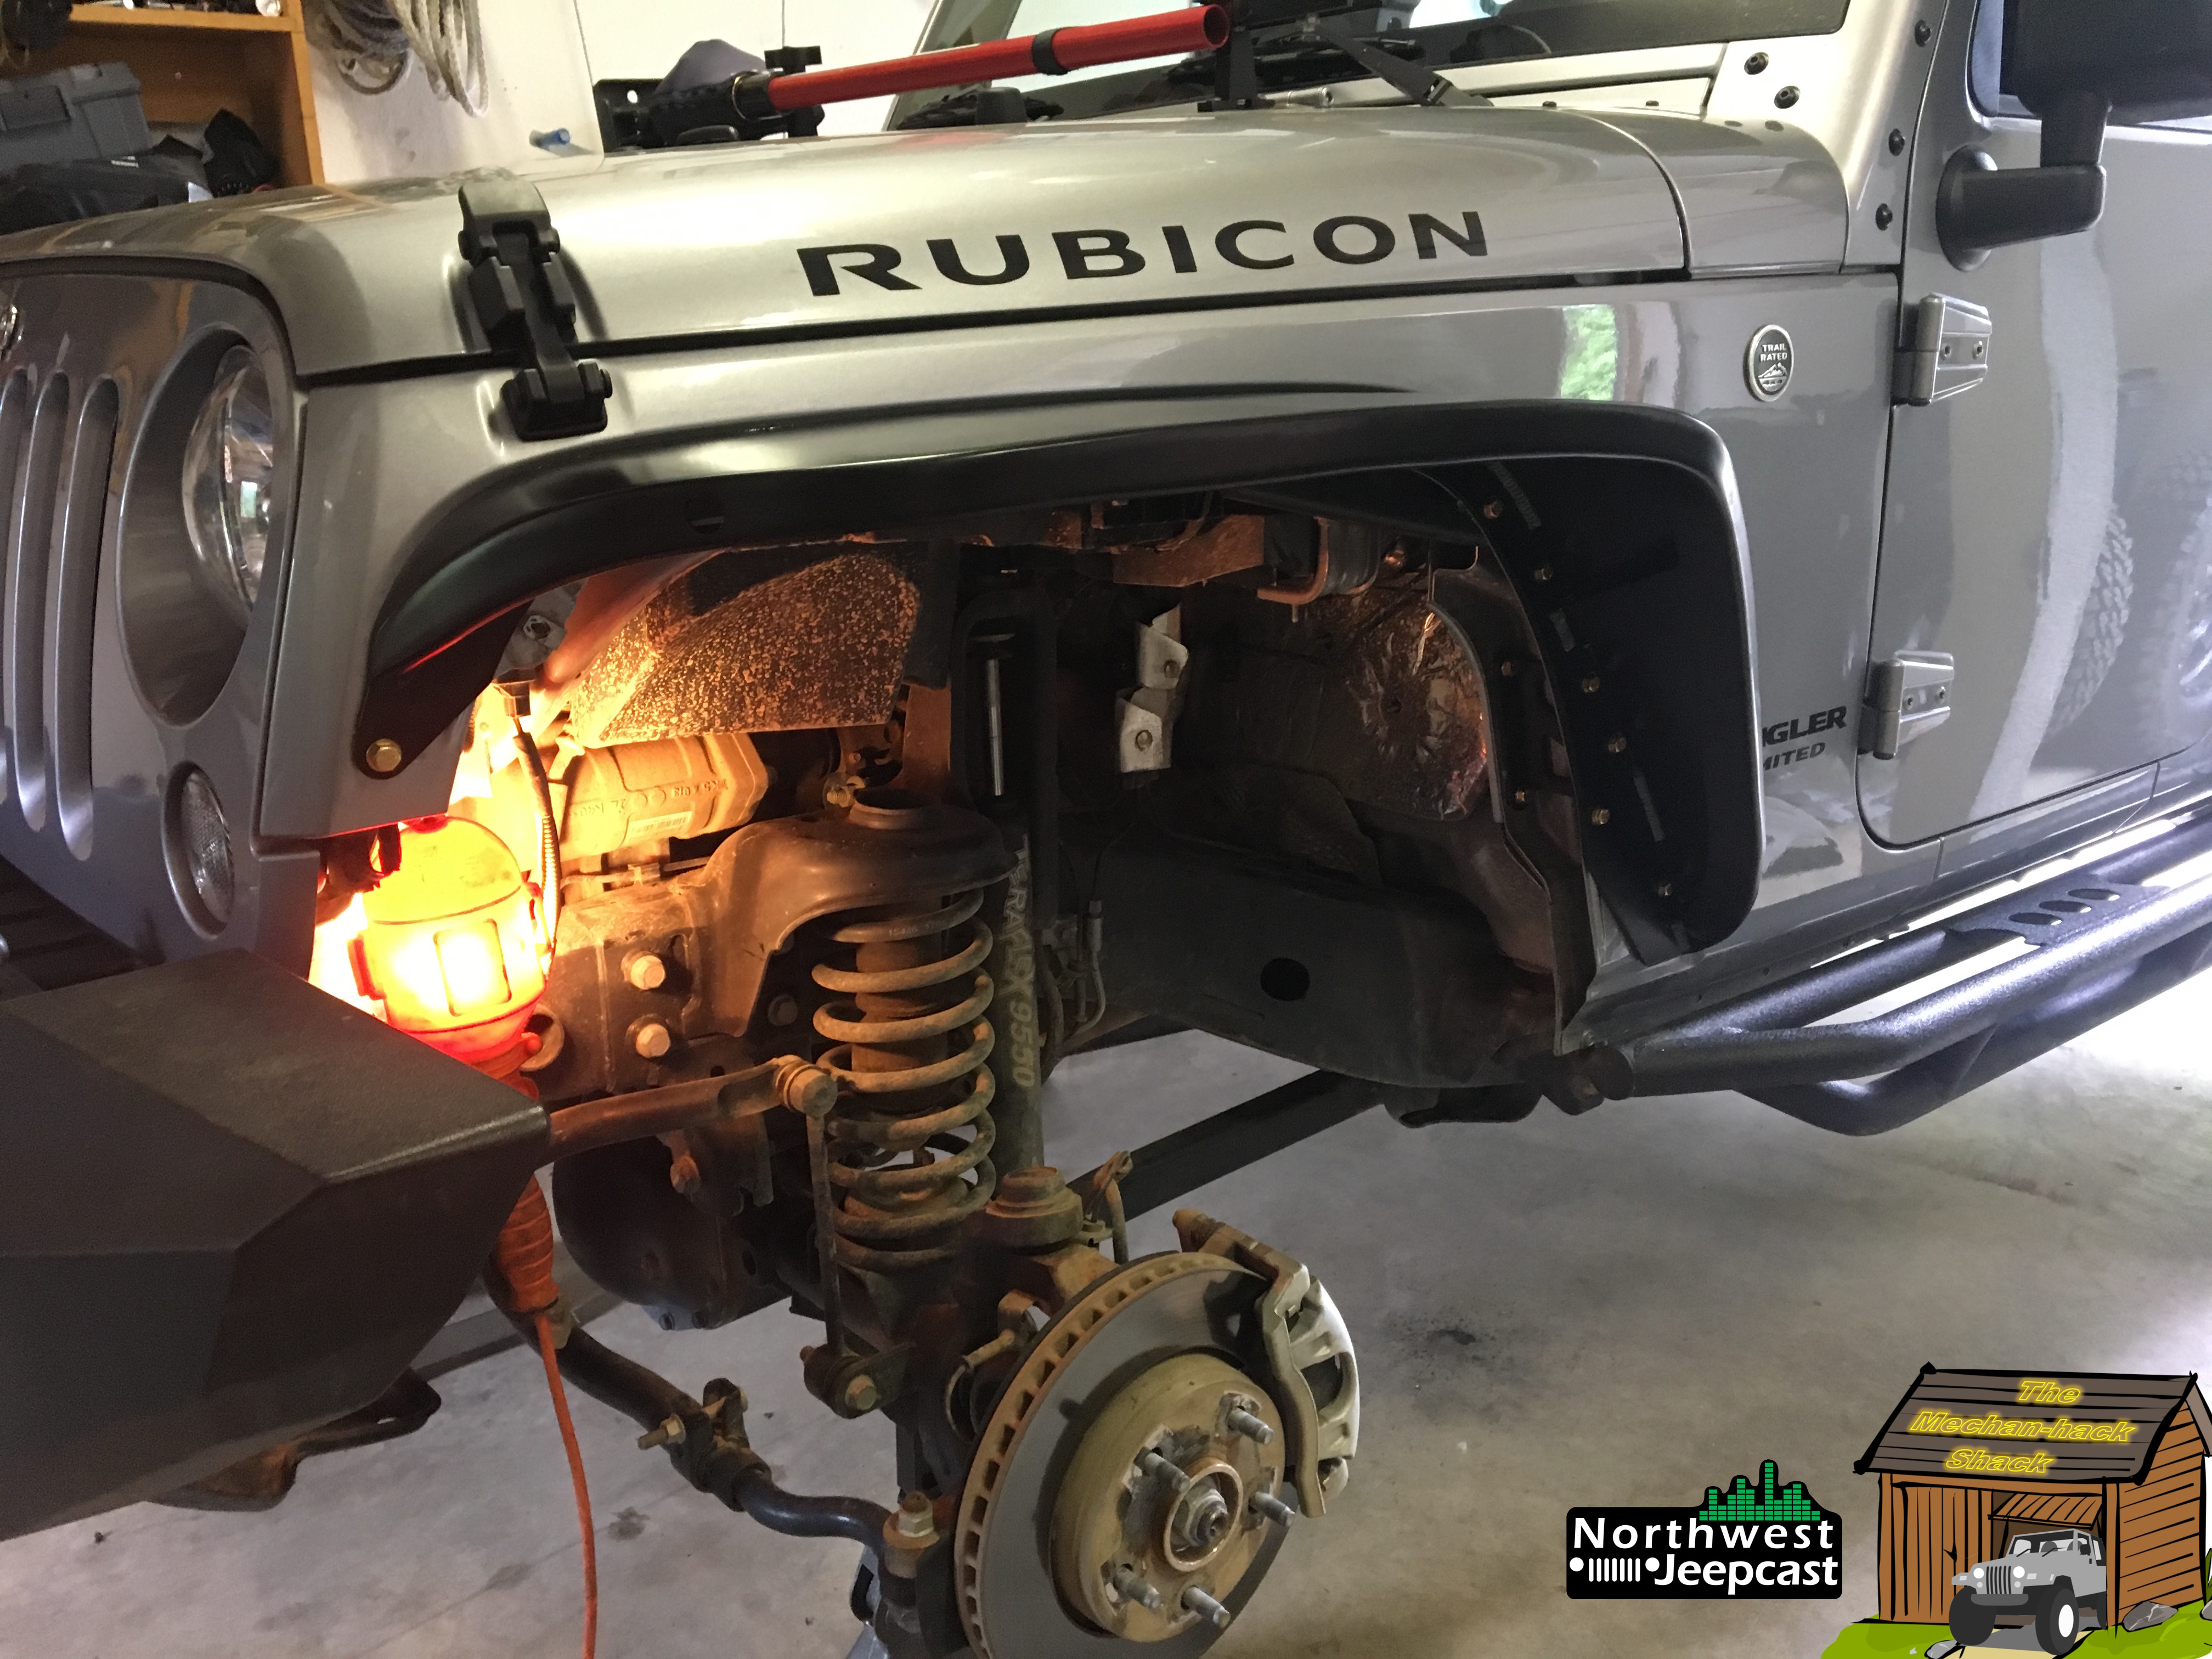 Northwest Jeepcast Fender Flare If You Dare Installing Jeep Flares Visit Northridge4x4com For All Your Needs And Listen A Special Coupon Code Start Amazon Shopping Experience At